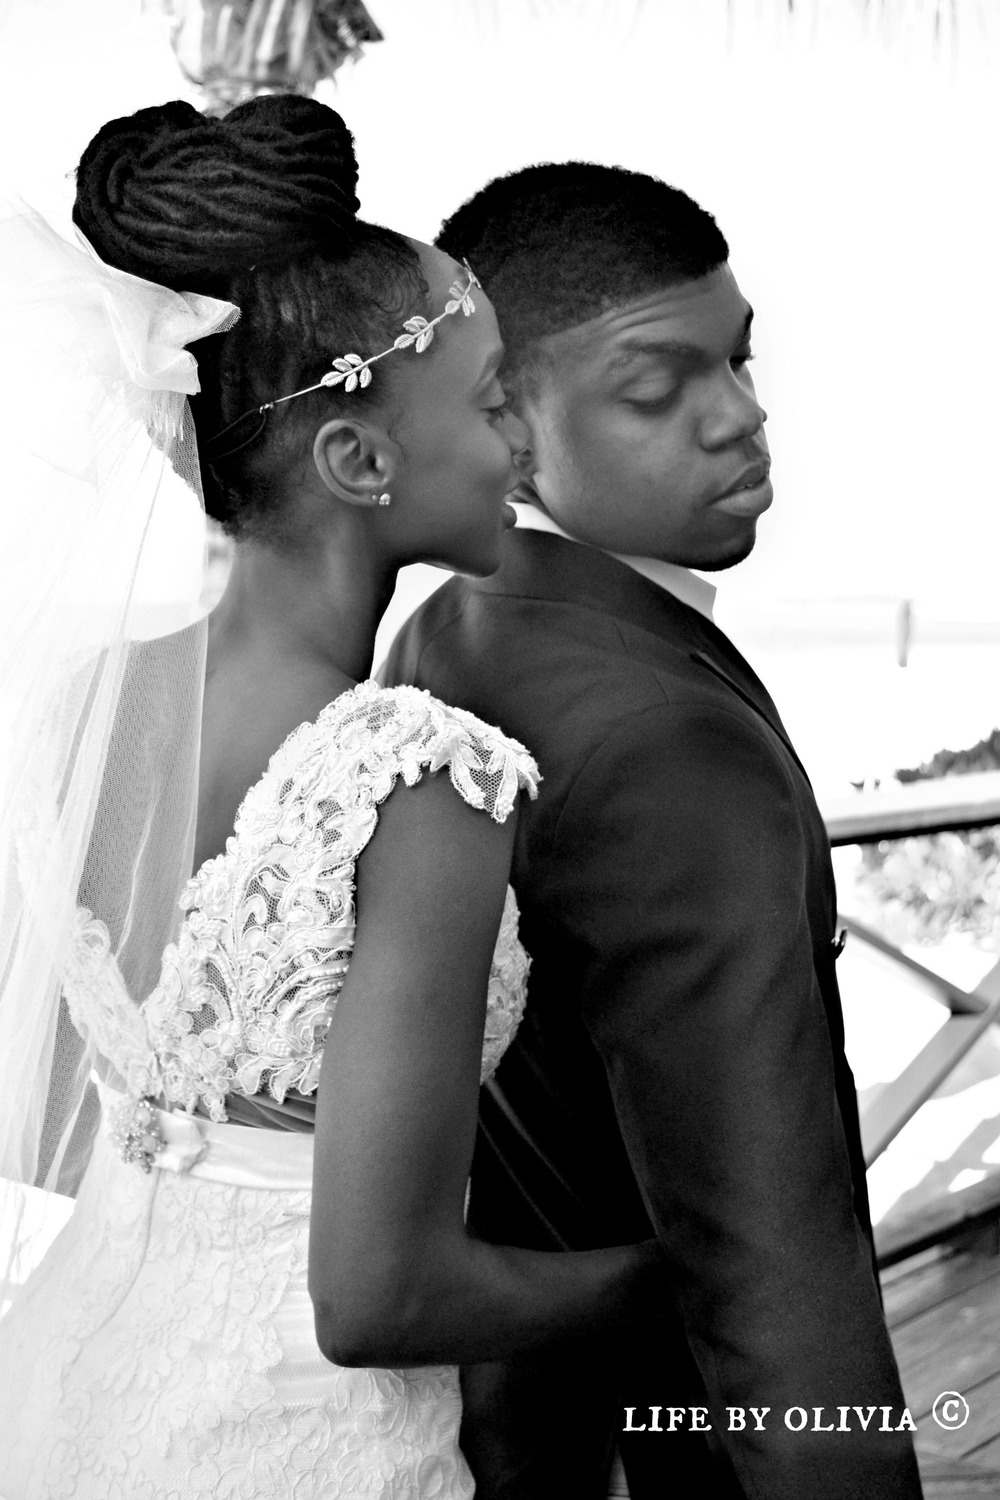 I had the privilege of shooting Cameron & Tanishka Parker's wedding in Abaco on 7th November. I loved how they took charge of their own day and had fun with it. They came up with a lot of their poses in the spirit of the moment and brought a lot of energy. I saw genuine happiness in both of them, wish them nothing but the best going forward and thank them for allowing me to be a part of something so amazing! Out of respect for privacy this is not all of the photos but just a little bit of their love!